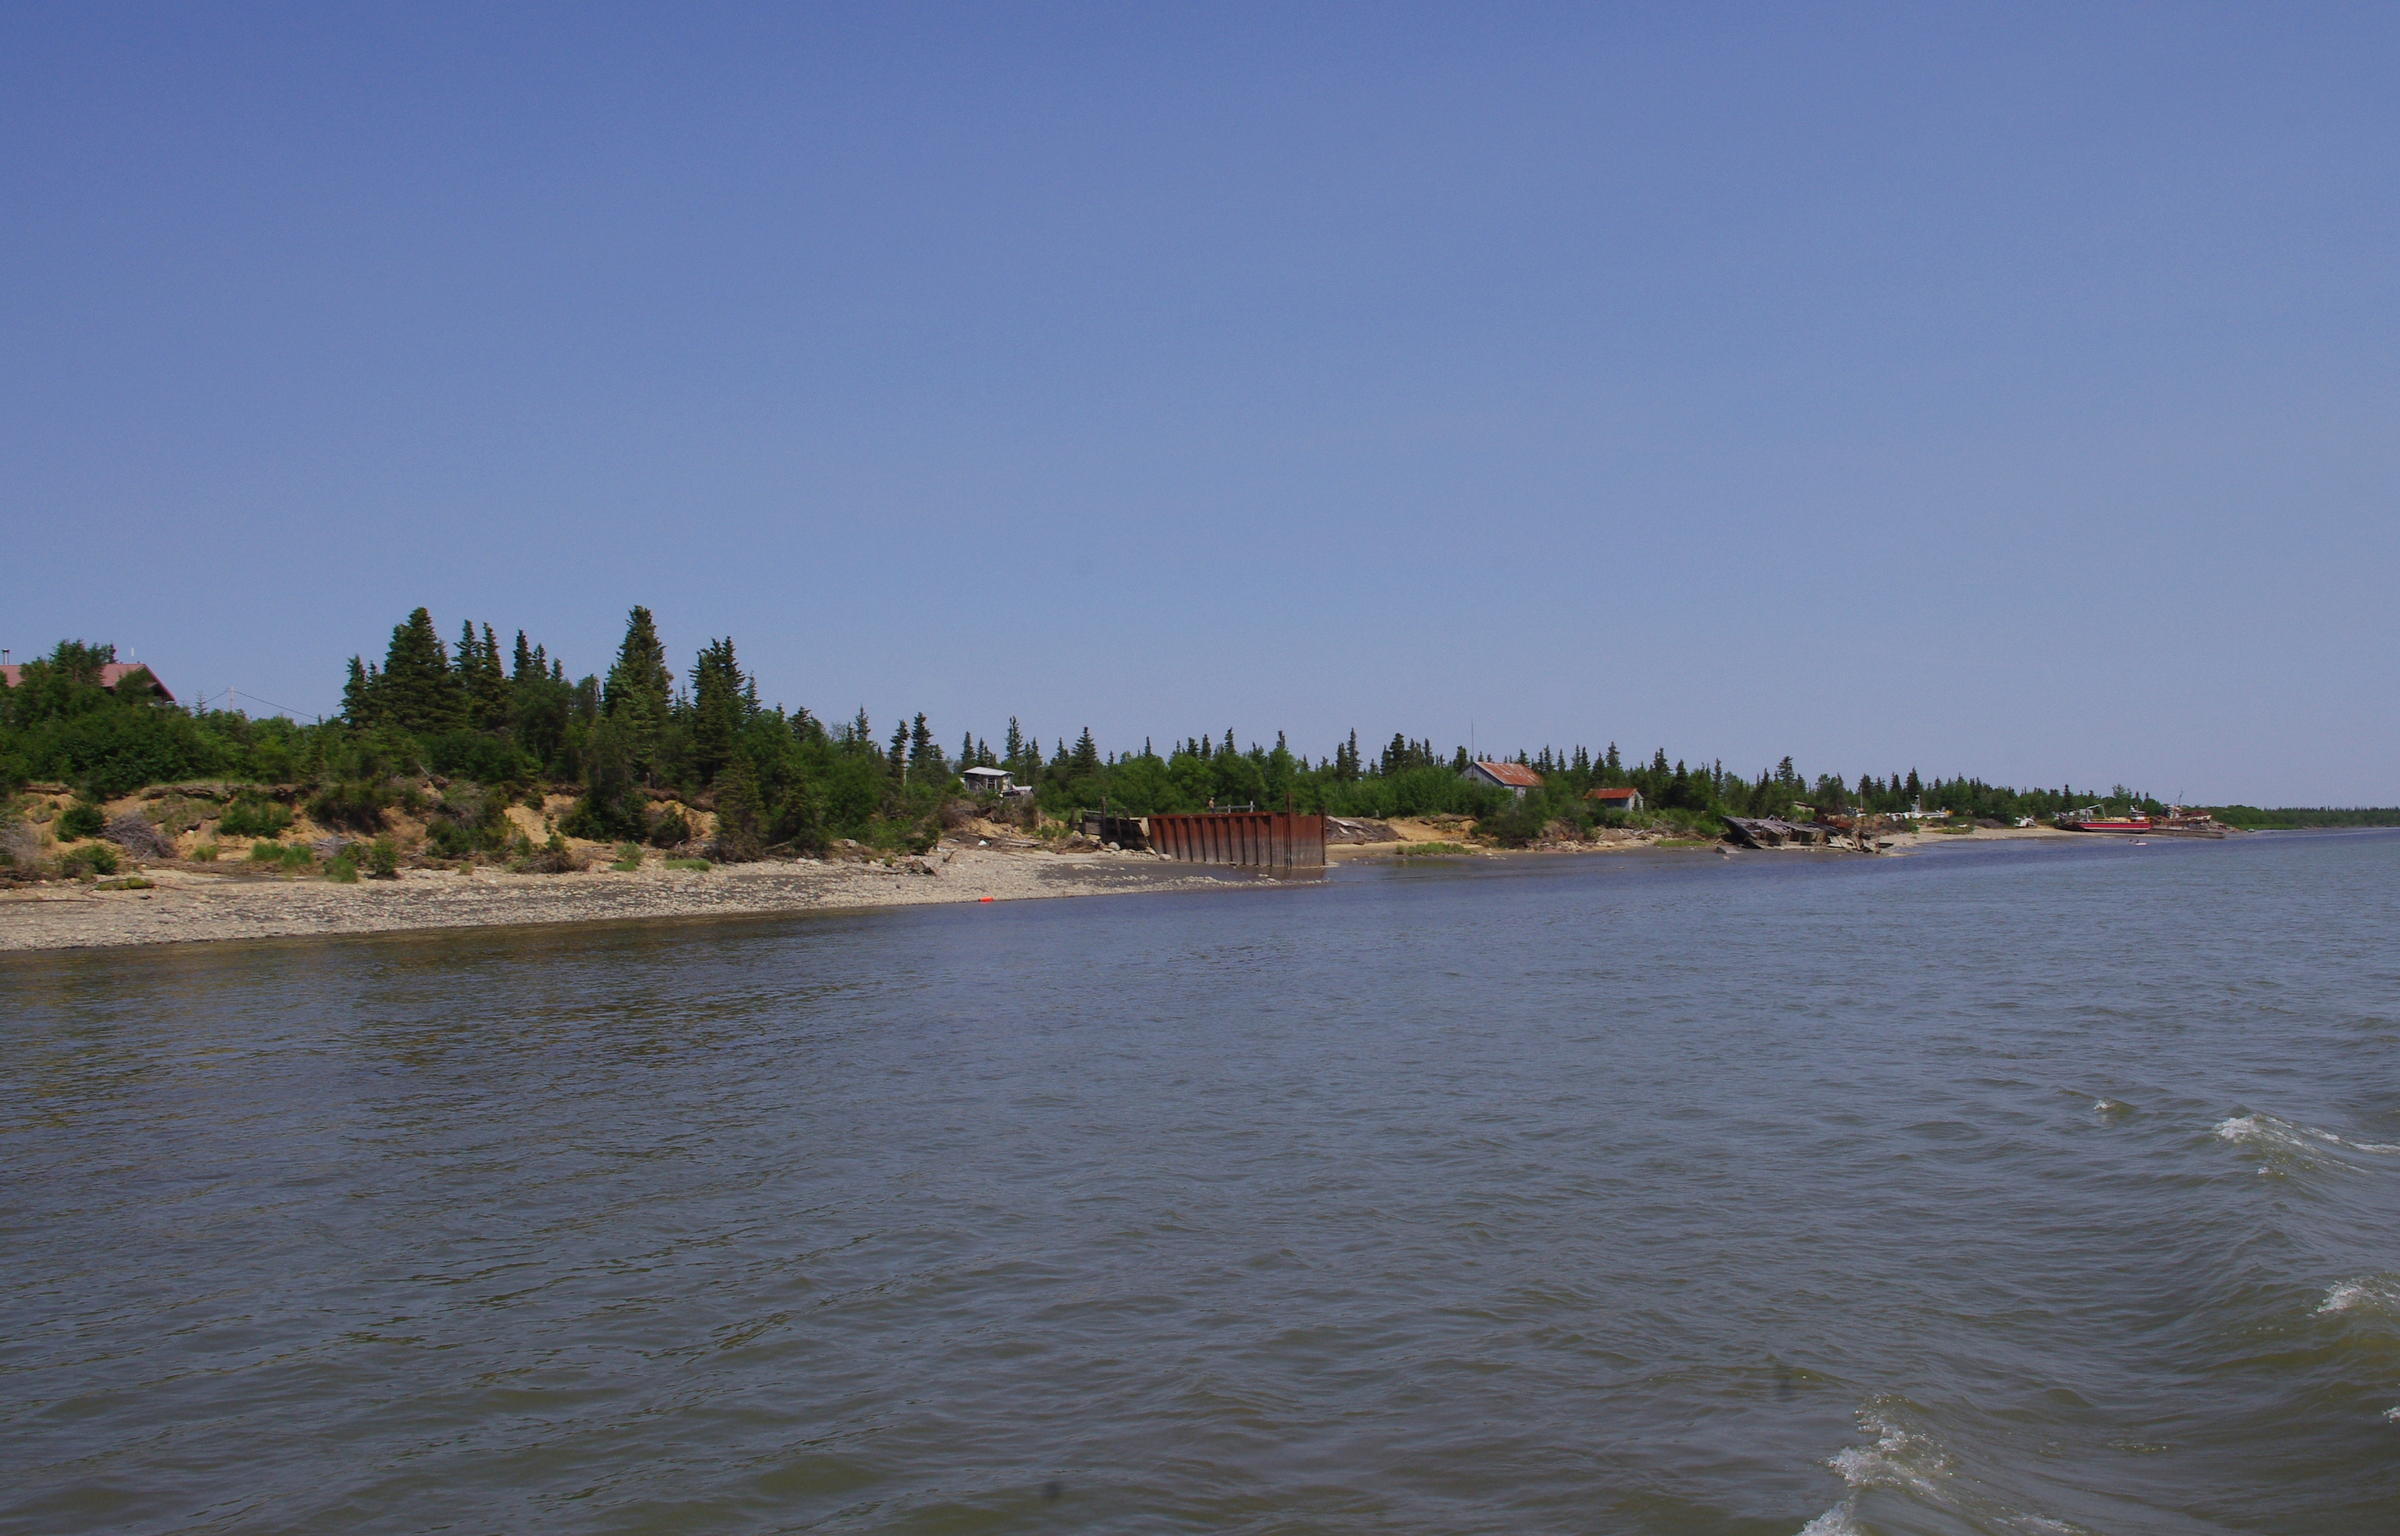 Levelock is shown in this June 2015 photo. The community on the Kvichak River is working to build a fish processing plant, which it hopes will open next year. (Photo by Molly Dischner, KDLG - Dillingham)